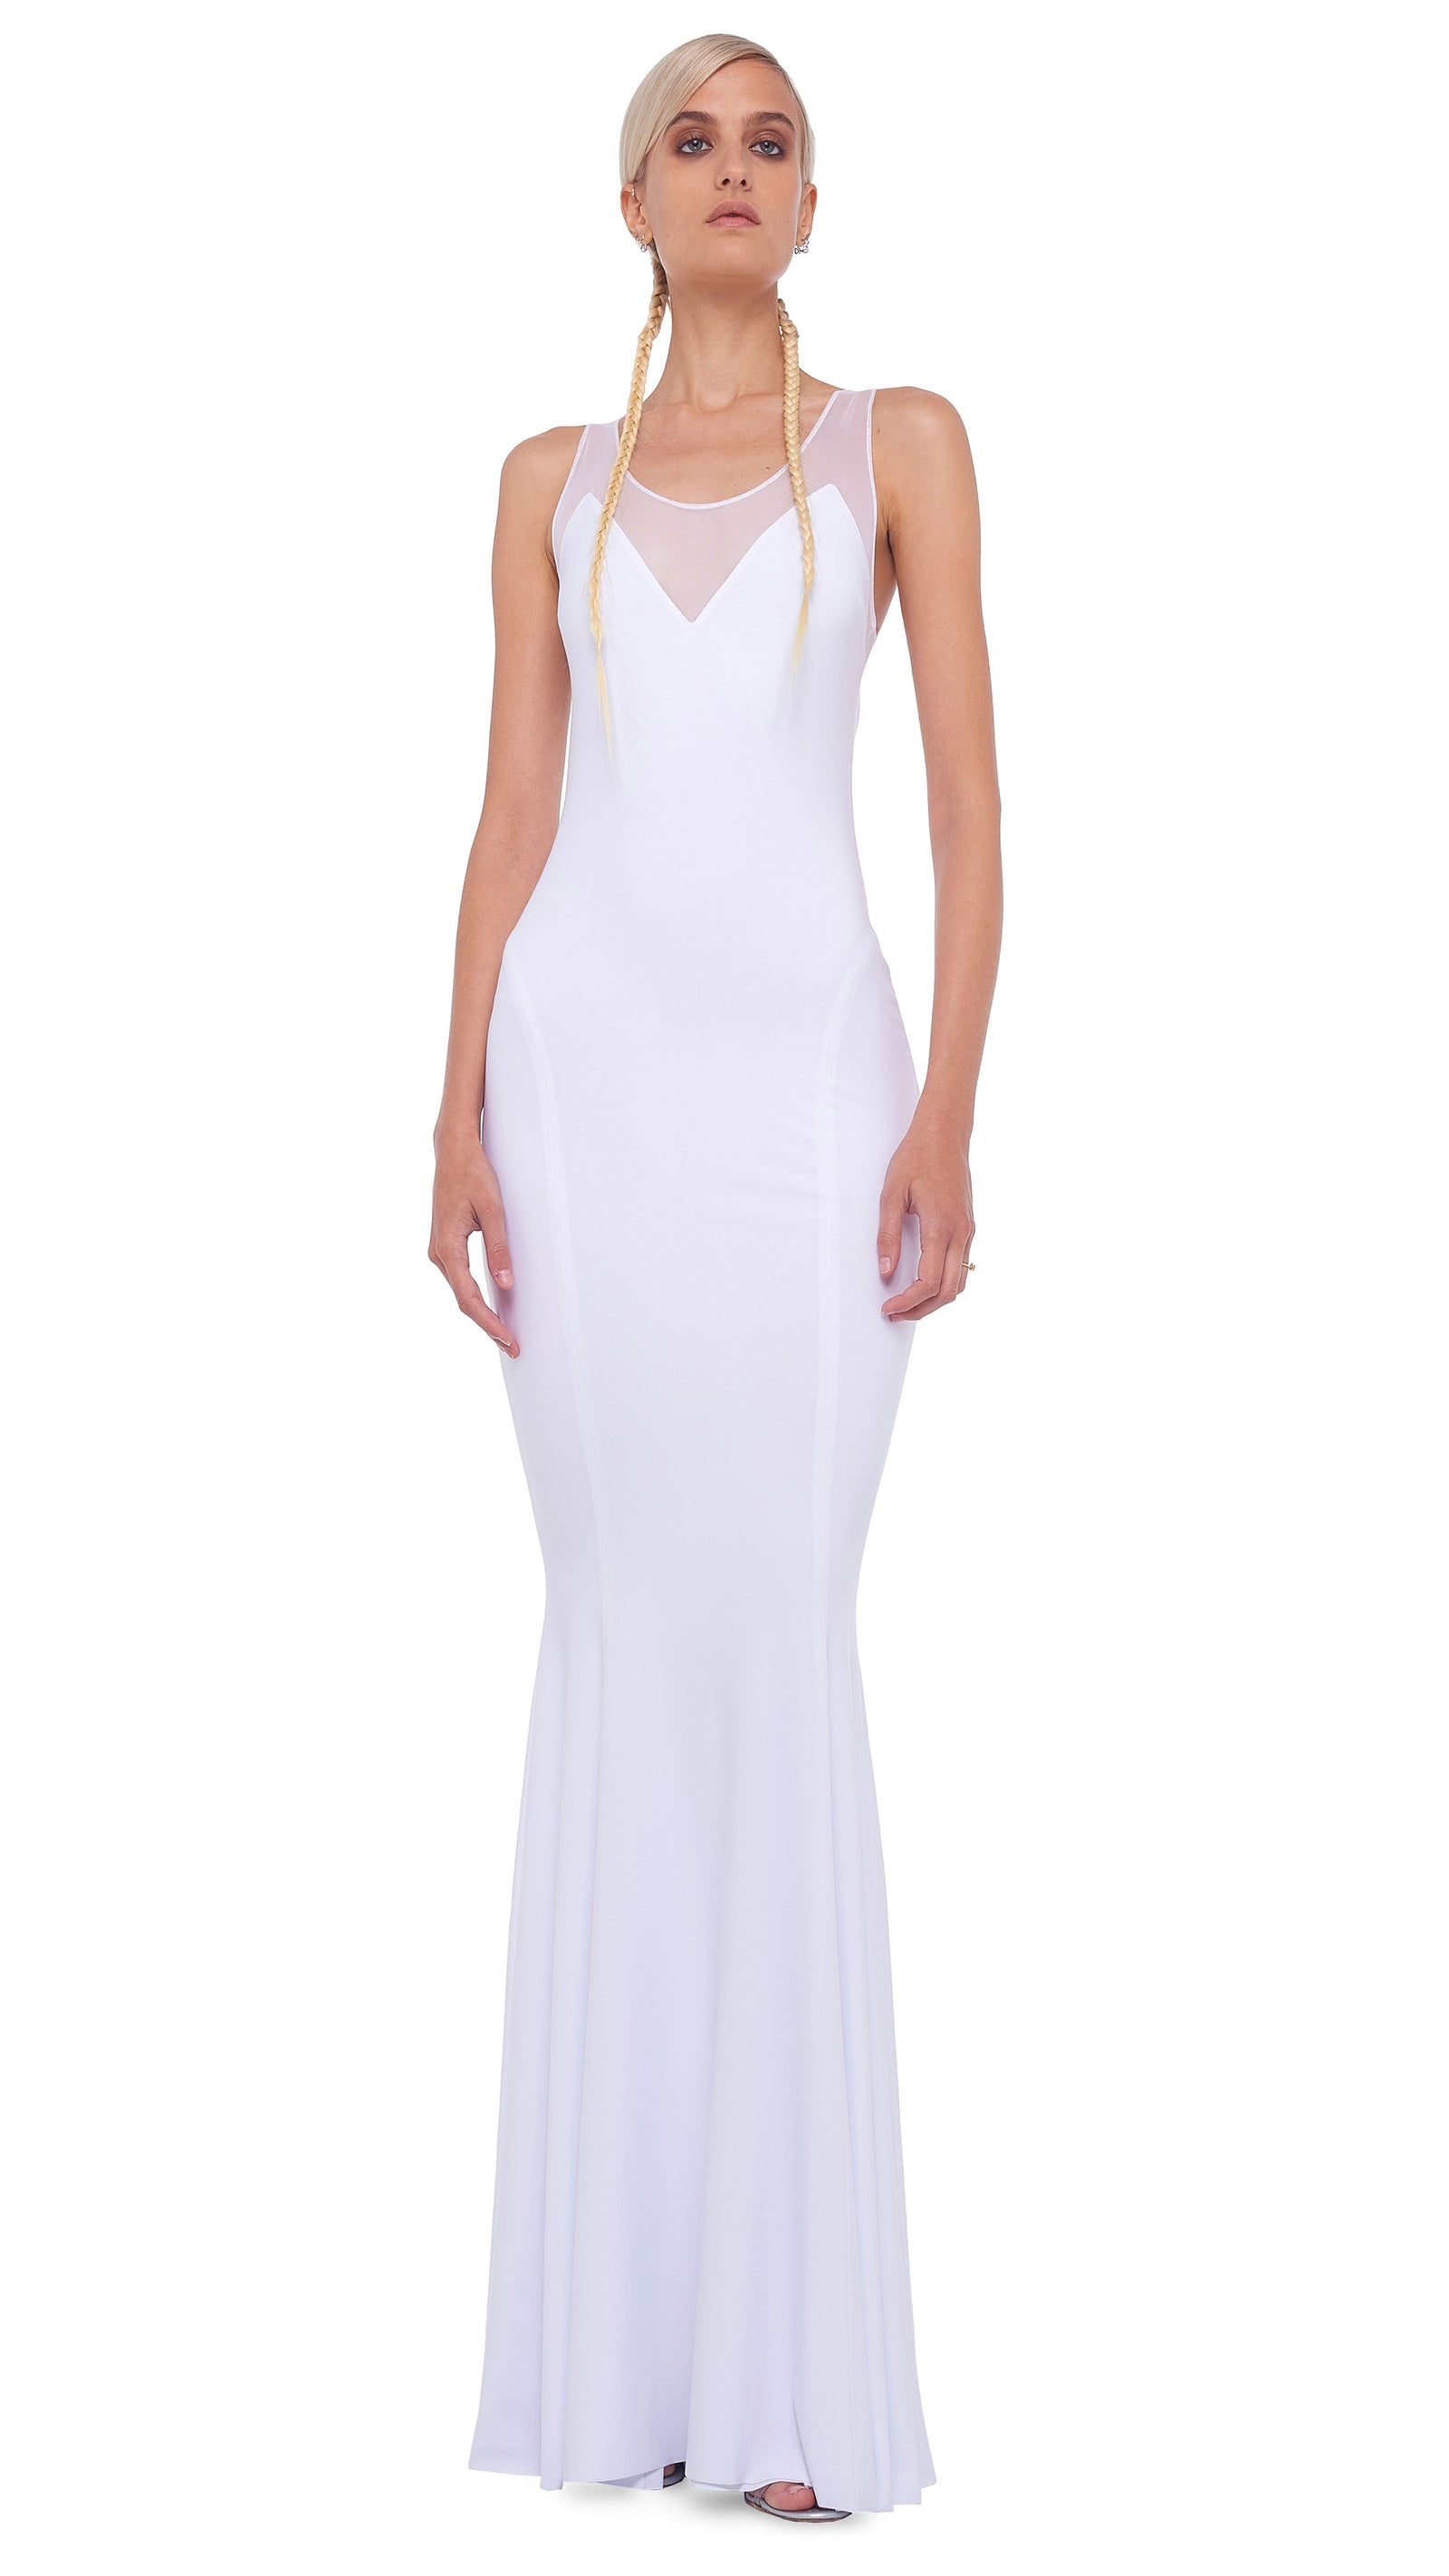 RACER FISHTAIL GOWN - 1